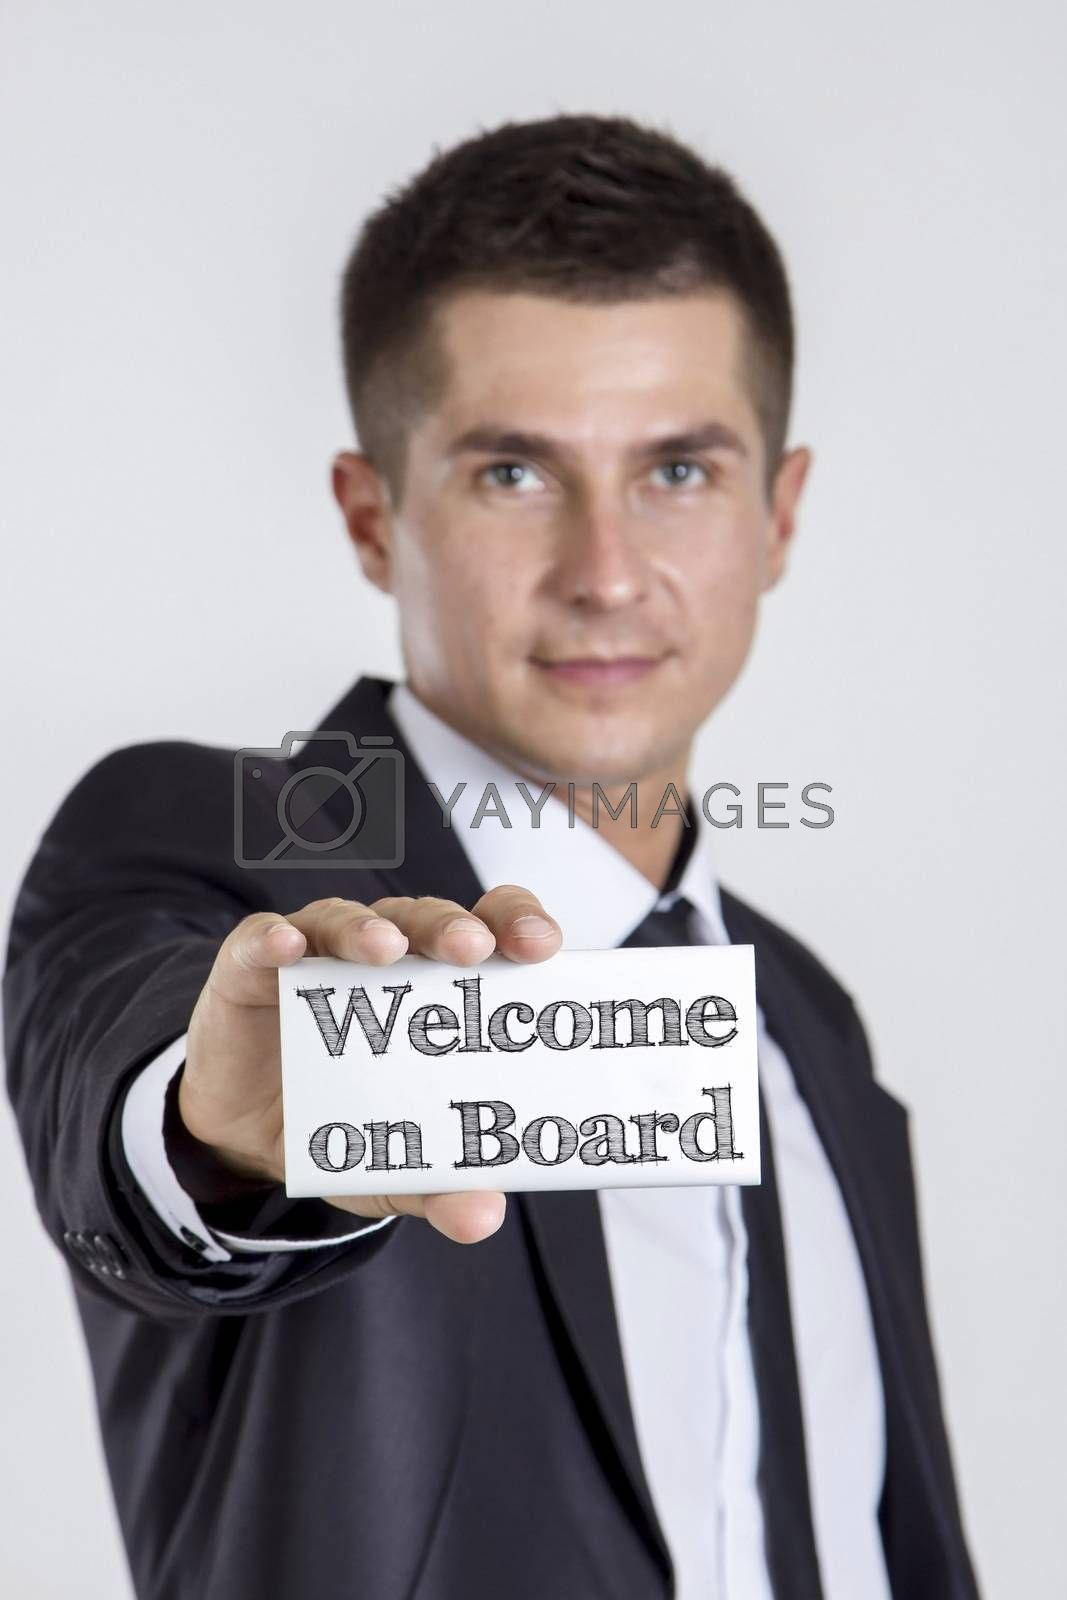 Welcome on Board - Young businessman holding a white card with text - vertical image